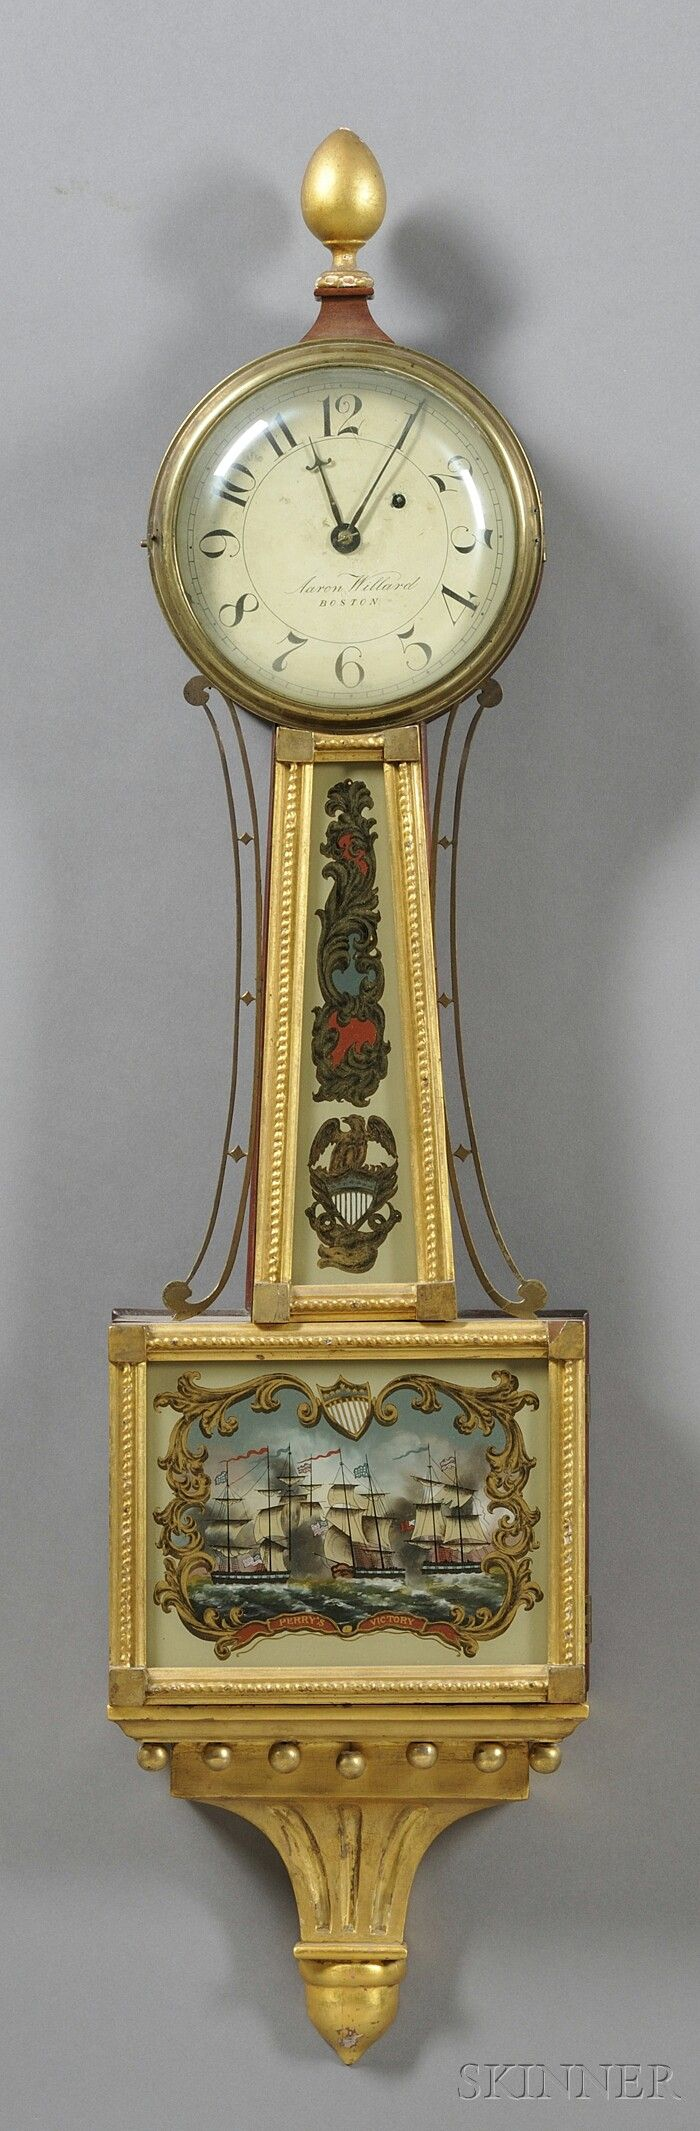 1706 best my grandfather clock collection images on pinterest